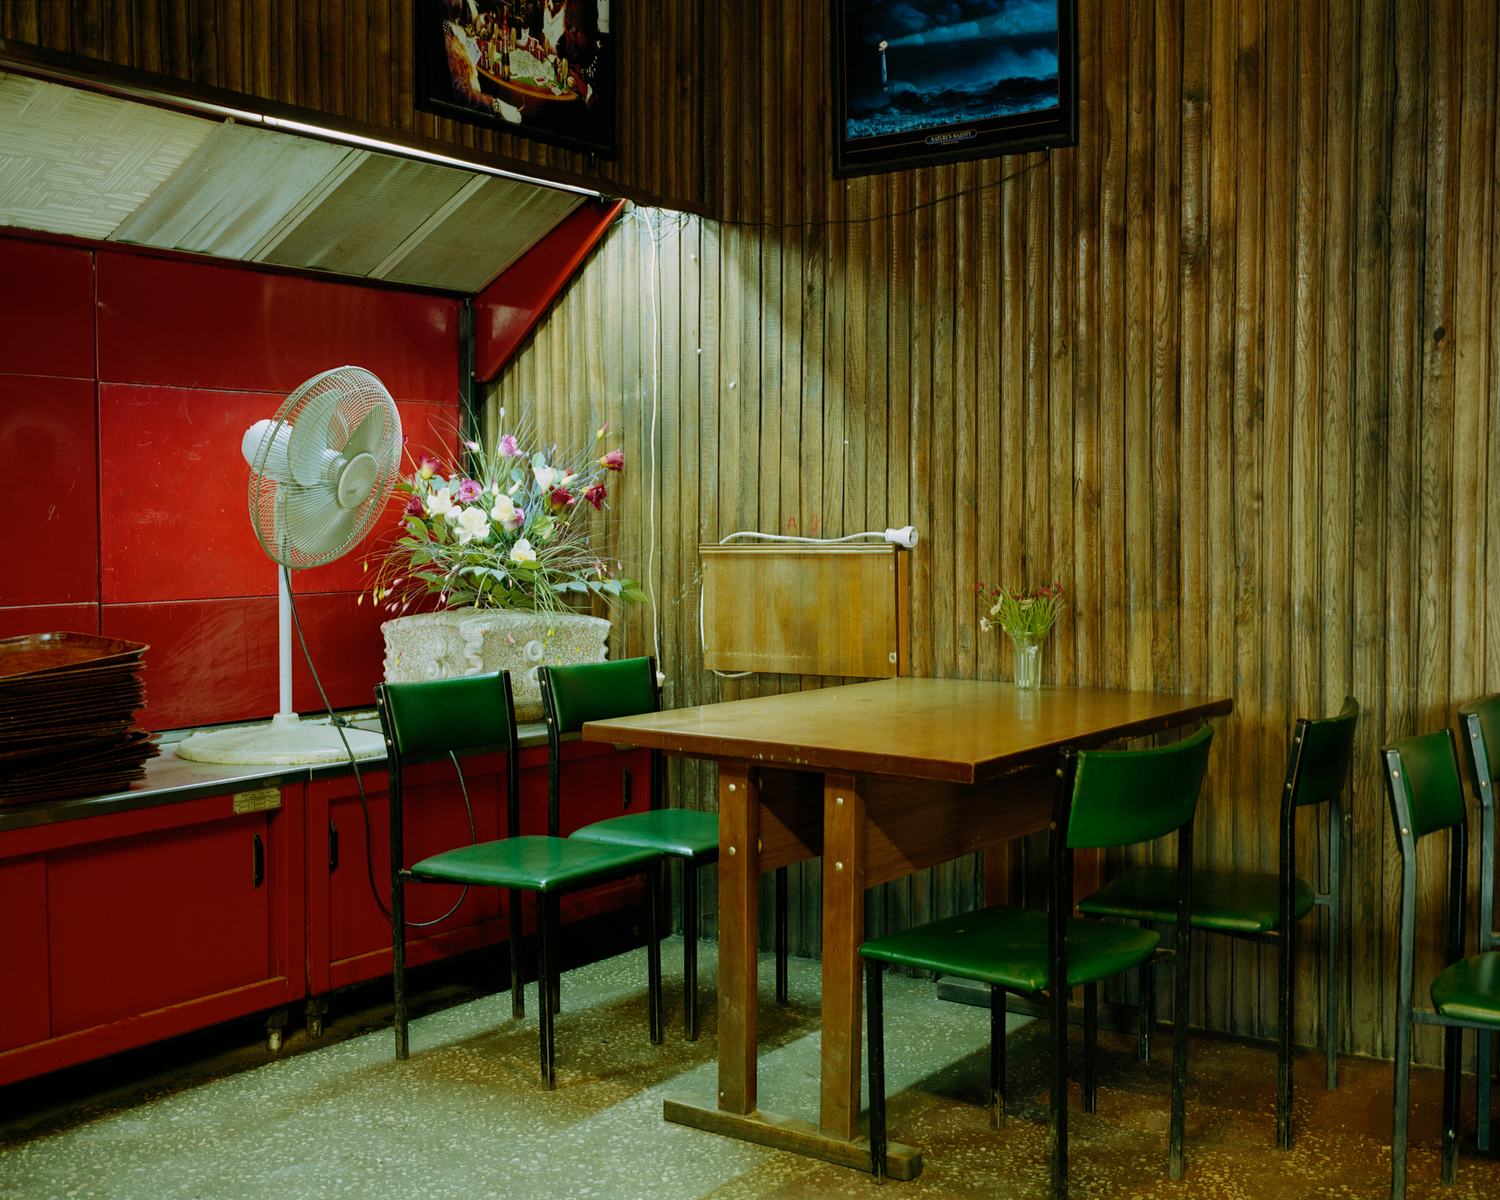 Interieur of an ex-Soviet canteen in Kaunas, Lithuania. September 2015